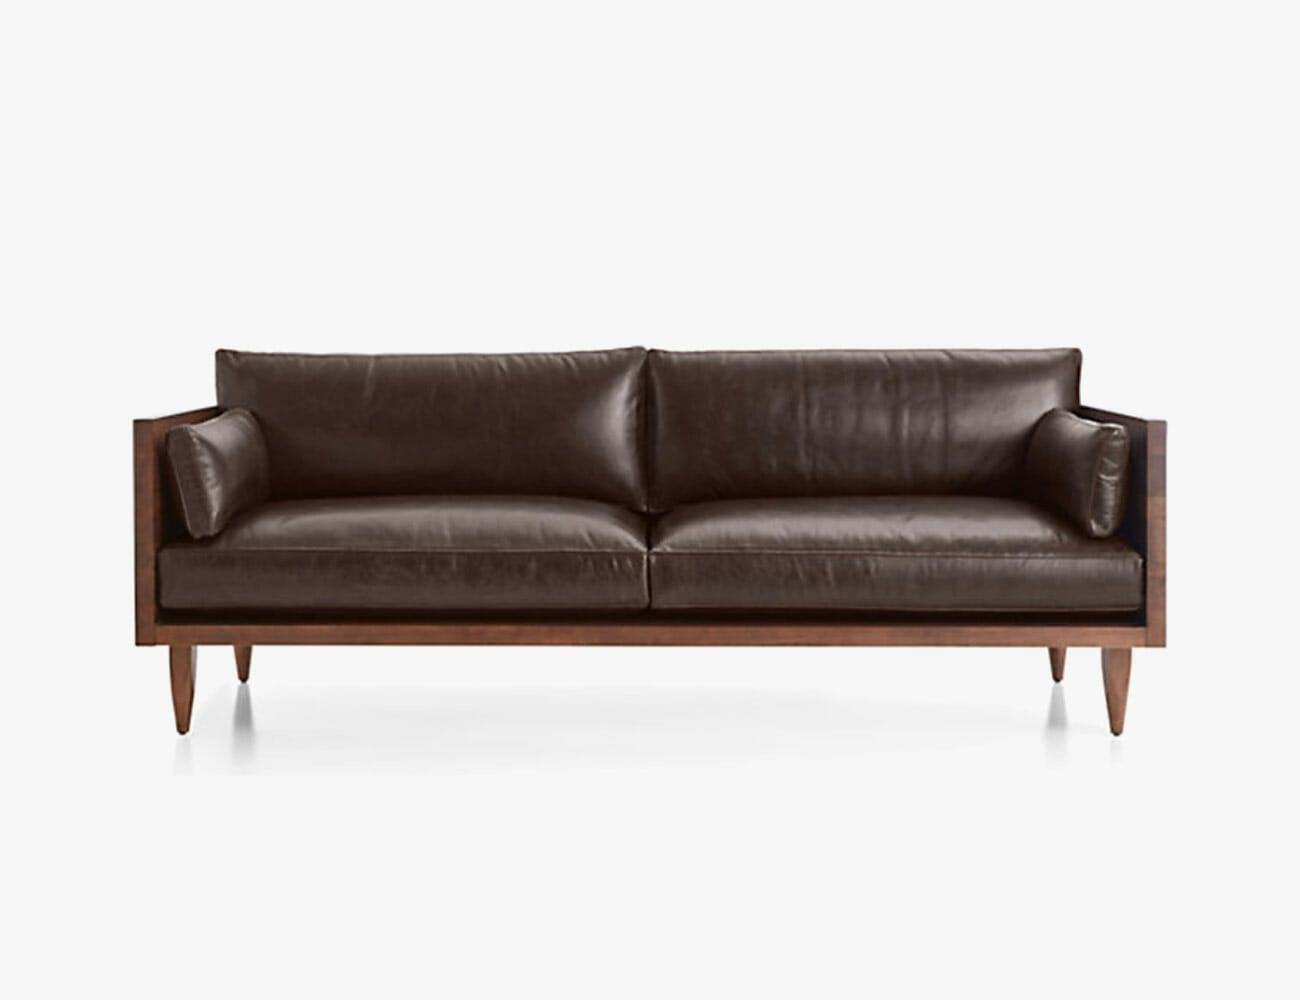 35 Best Sofas Of 2021 Burrow Floyd Ikea More